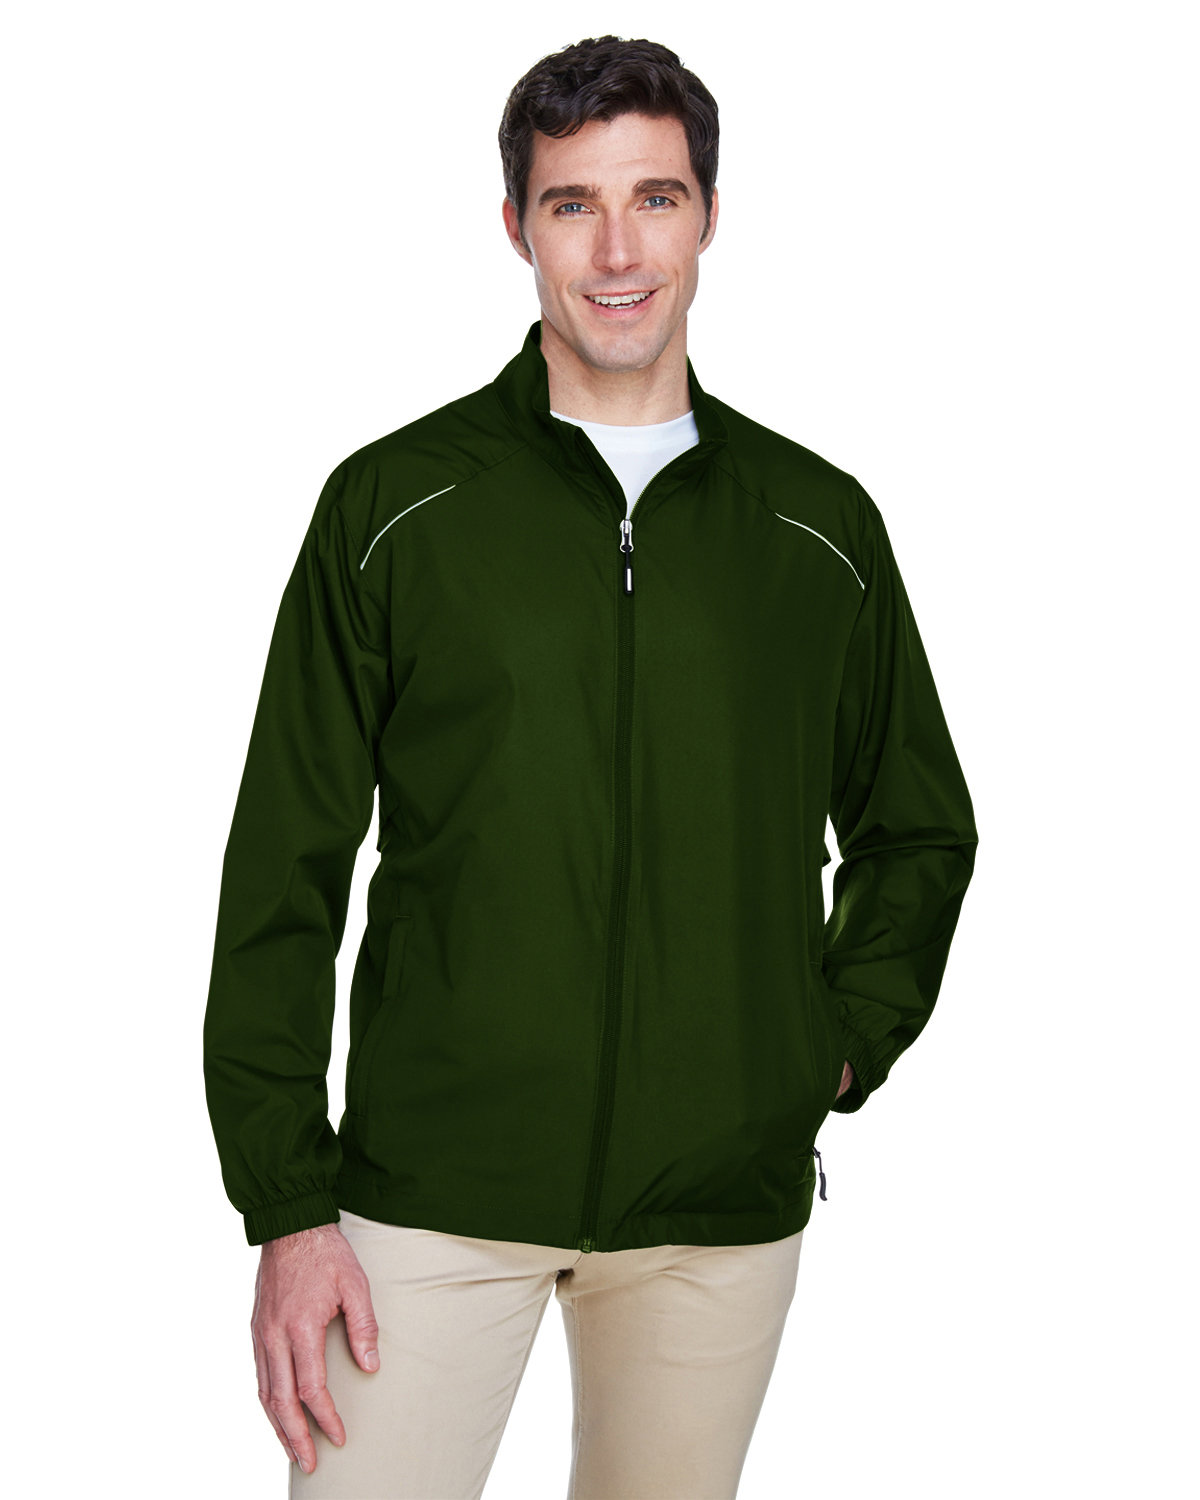 Core 365 Men's Motivate Unlined Lightweight Jacket FOREST